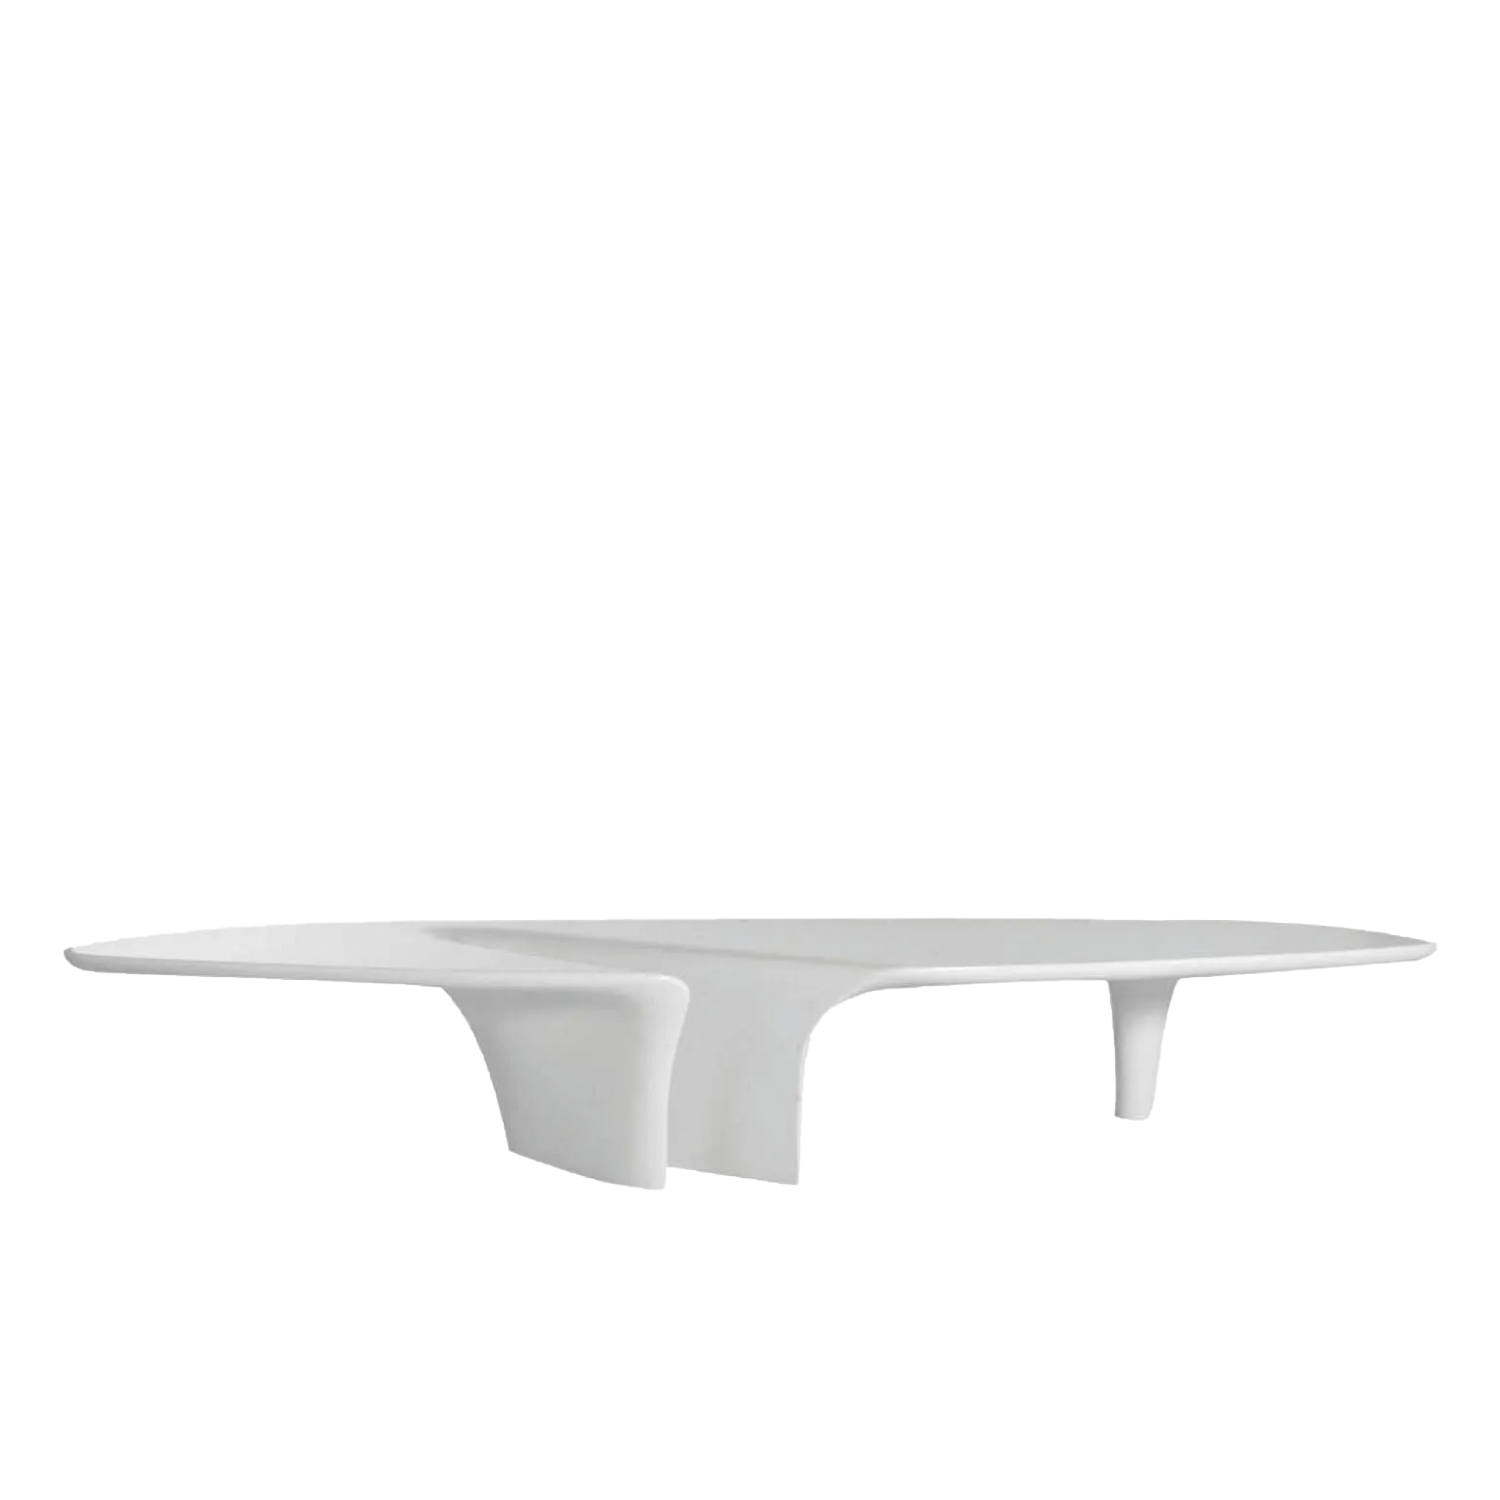 Waterfall Coffee Table - Even a coffee table can become a piece of art if it can stand regardless of the typological limitations. Fredrikson Stallard address the issue with the strength of the material to be bent and shaped. The result is a completely new form, marked by an important, and expressionistic, depression in the center of the top. | Matter of Stuff